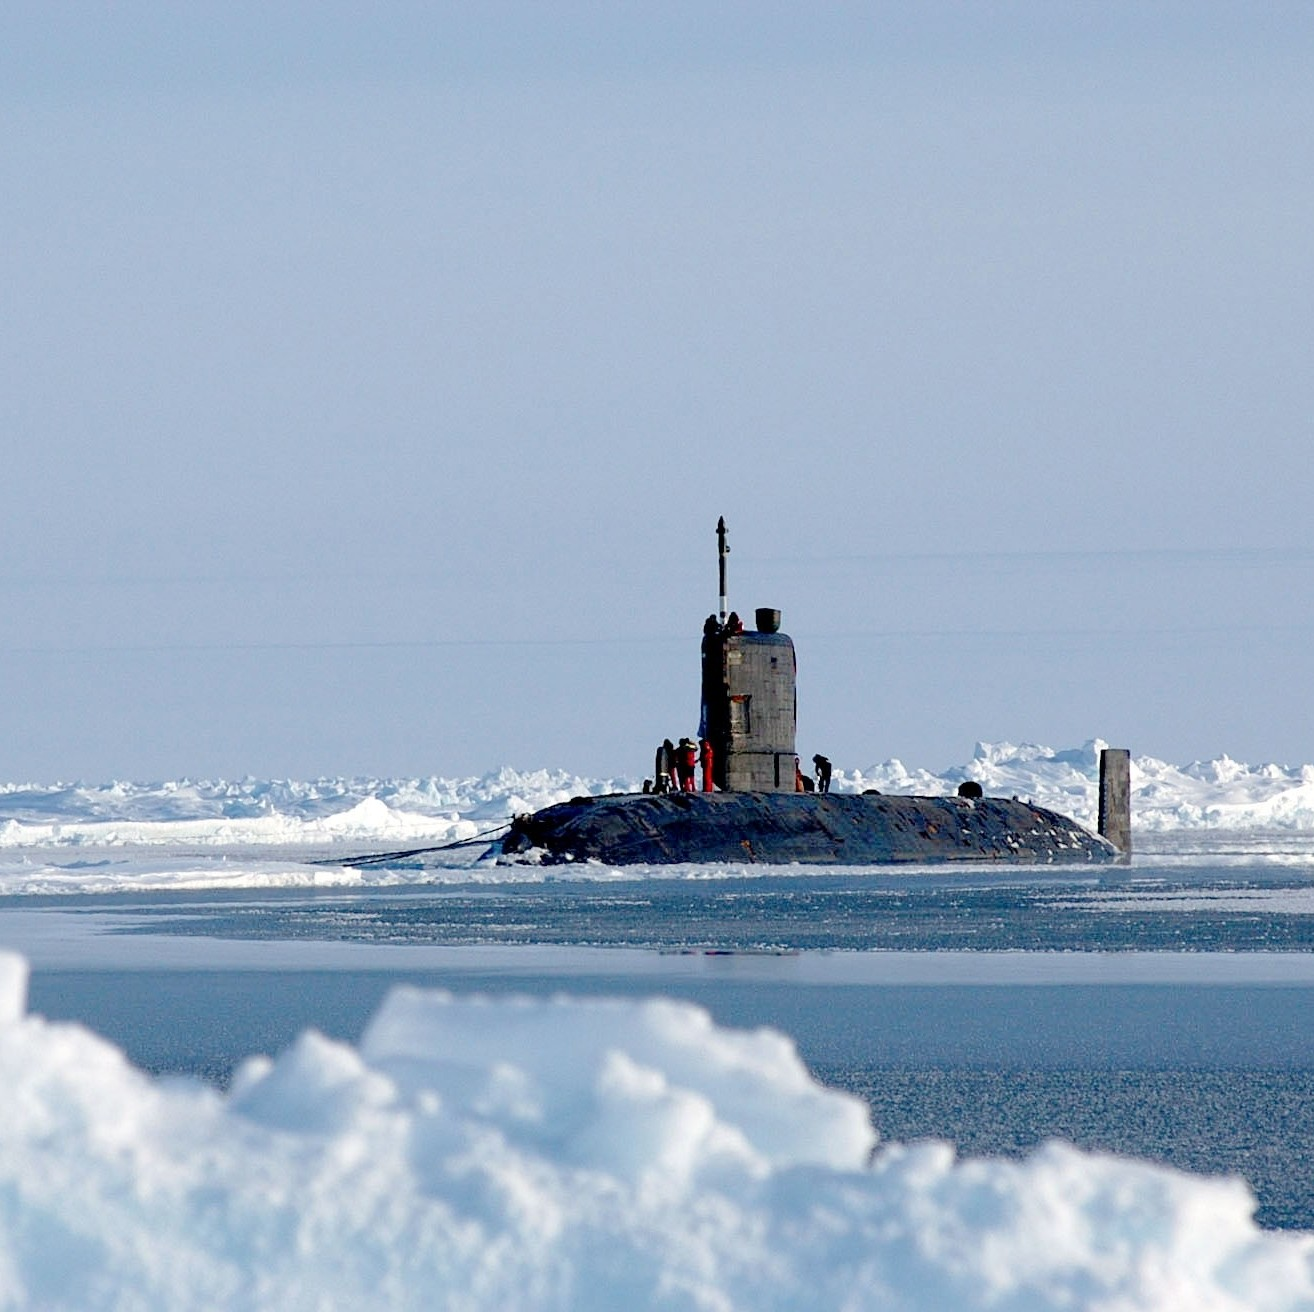 The Royal Navy Trafalgar class attack submarine HMS Tireless (S88) sits on the surface of the North Pole. Tireless surfaced with the U.S. Navy Los Angeles-class attack submarine USS Hampton (SSN 767) for ICEX 04, a joint operational exercise beneath the polar ice cap